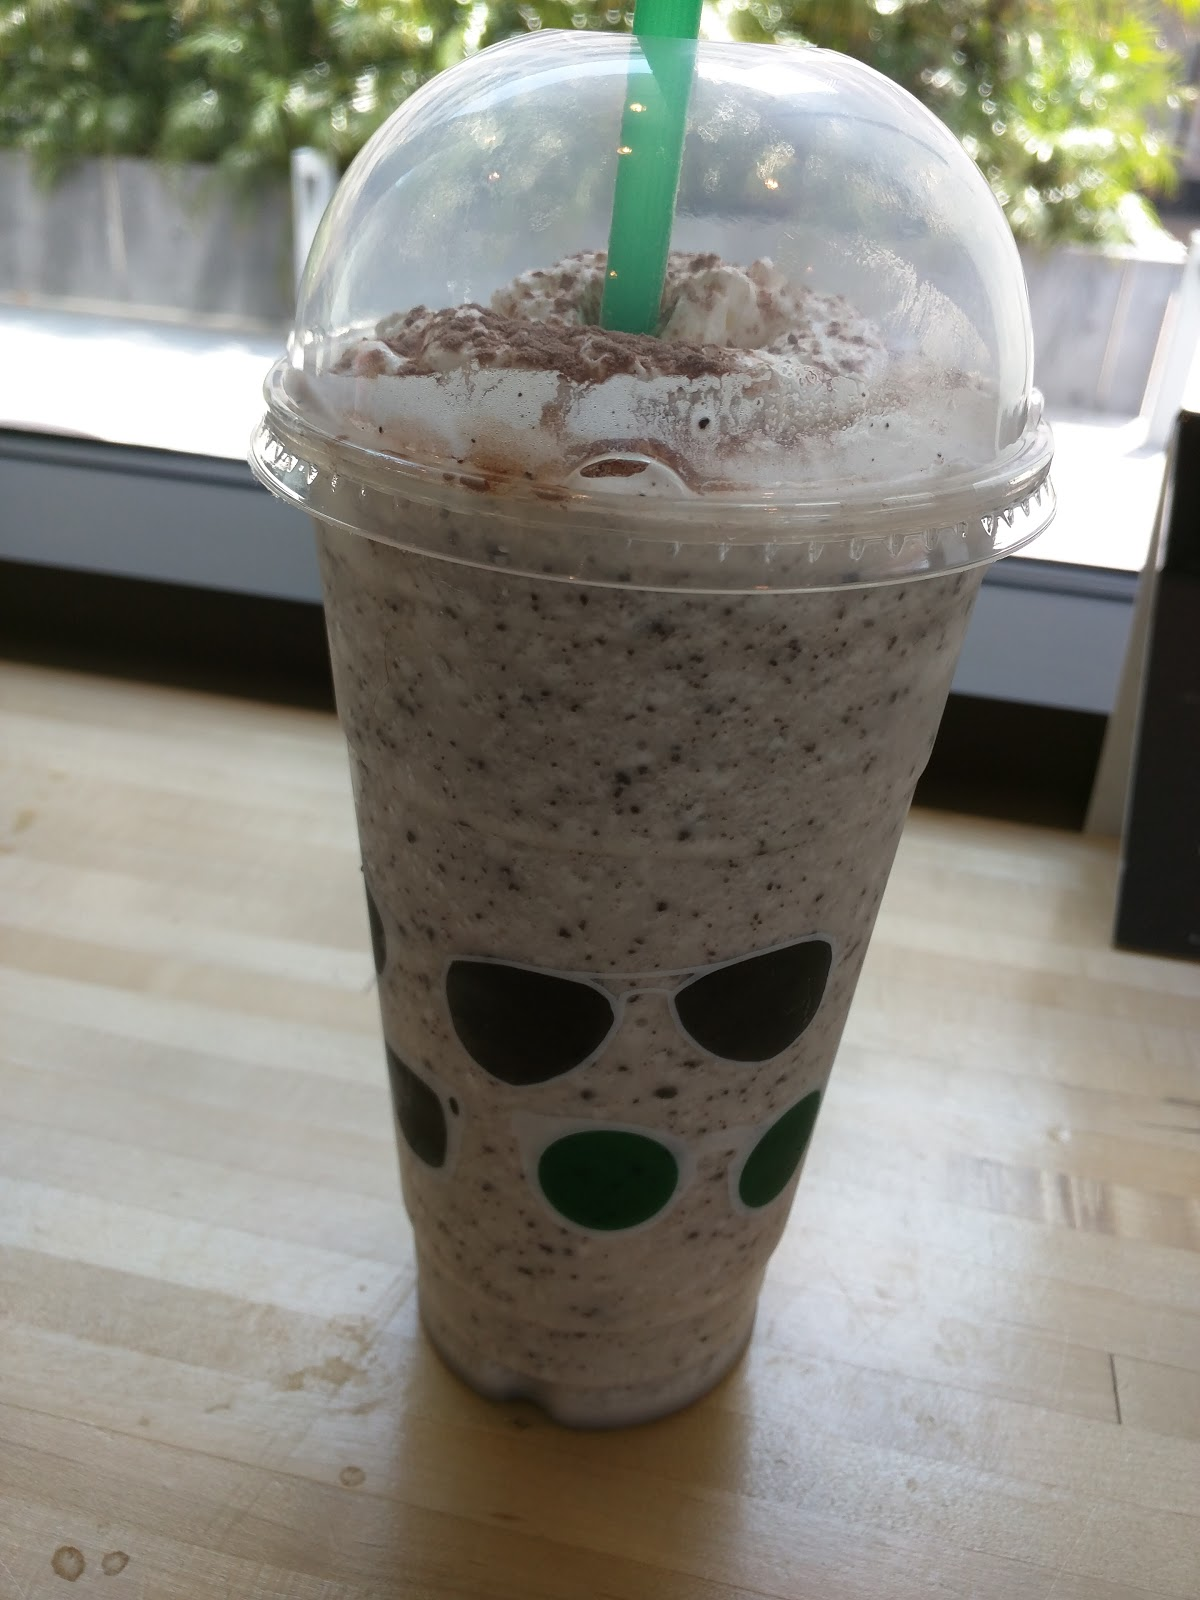 Venti Crème Frappuccino®, Skim Milk, 1 Pump Toffee Nut, Java Chips, Light  Marshmallow Whipped Cream.